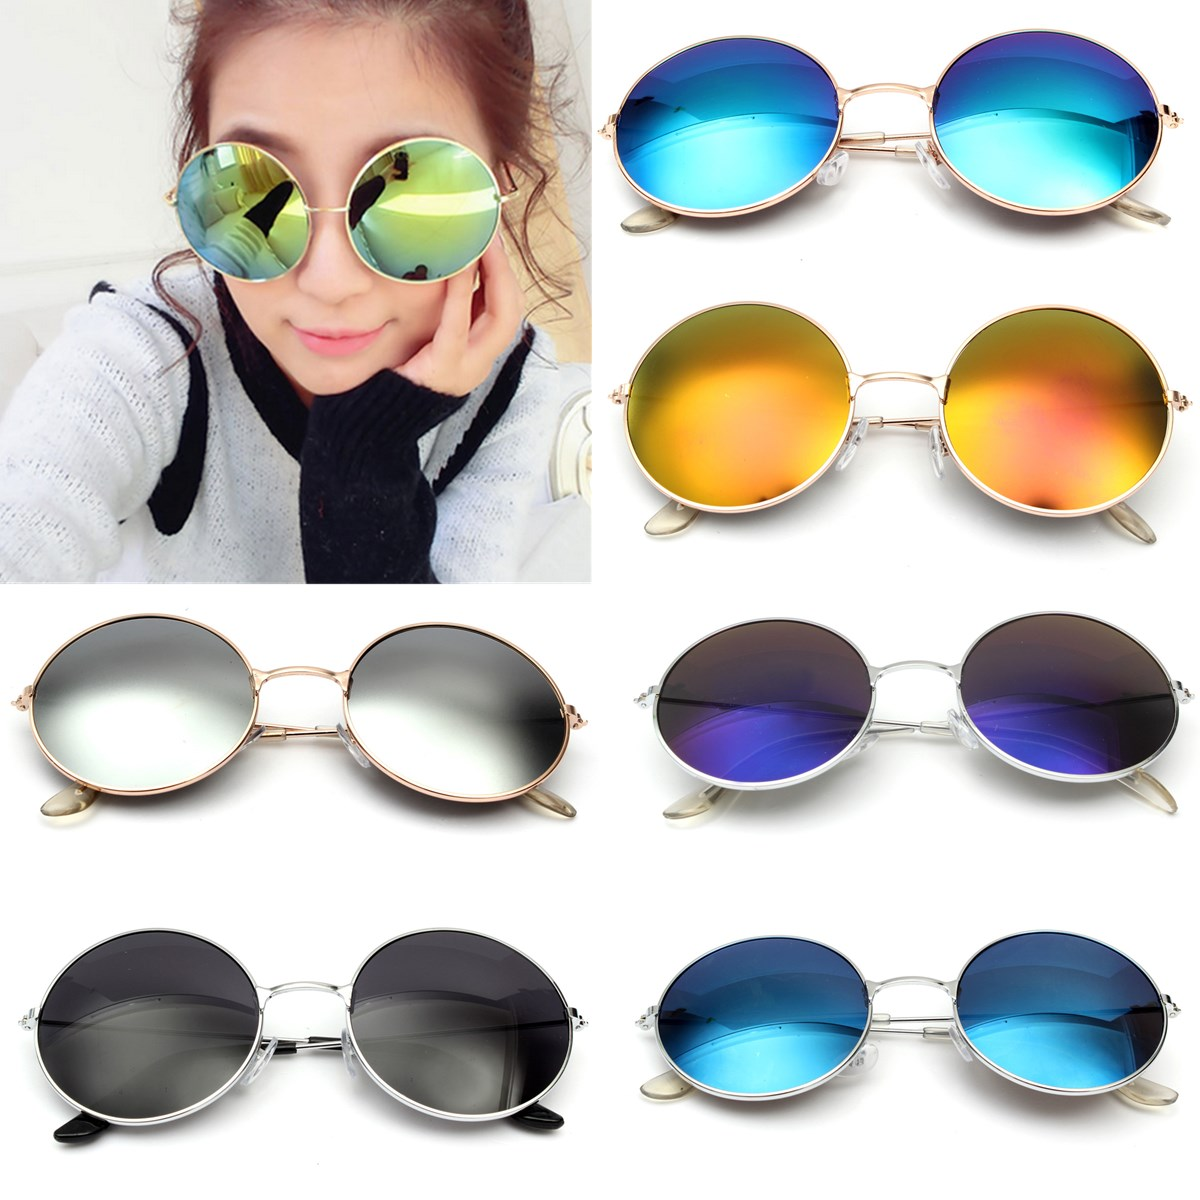 Retro Vintage Men Women Big Round Metal Frame Sunglasses Glasses ...